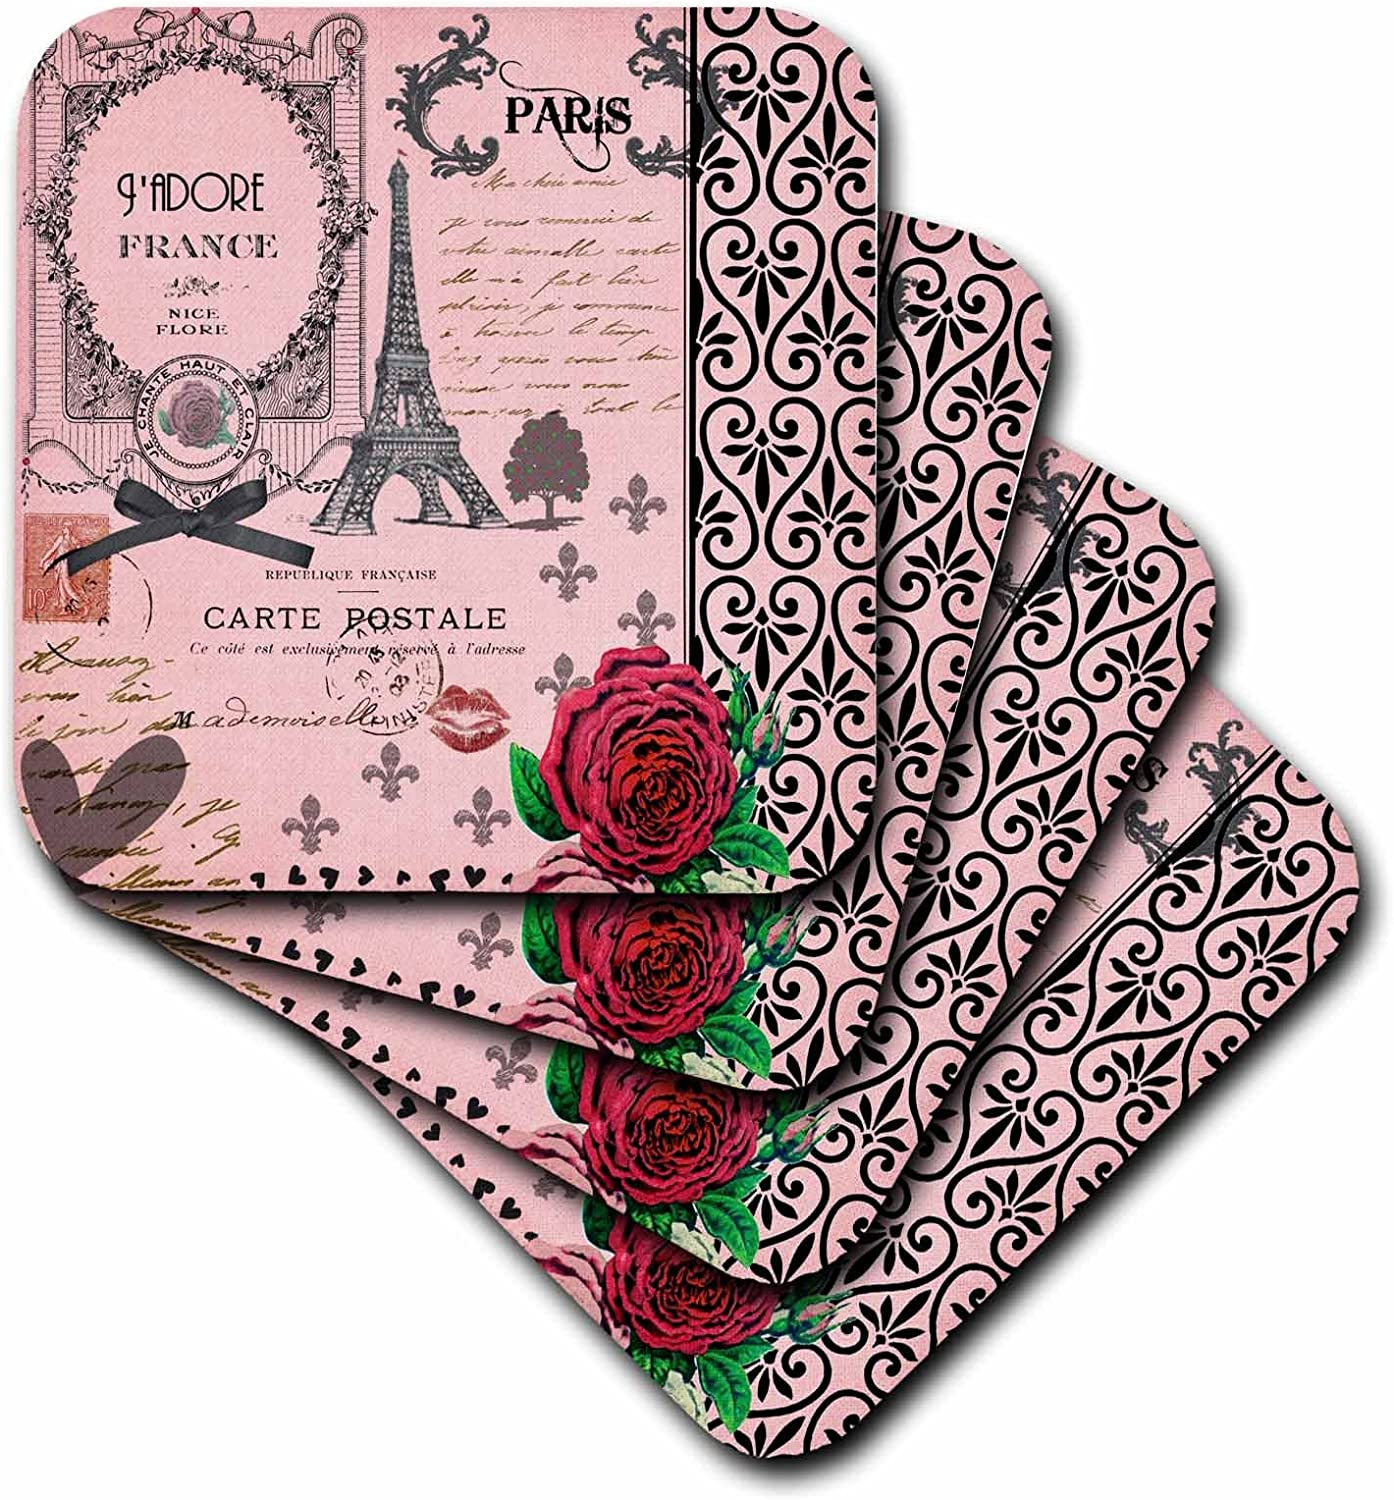 3dRose CST_76593_1 Stylish Vintage Pink Paris Collage Art Eiffel Tower Red Rose Girly Gothic Black Bow and Swirls Soft Coasters, Set of 4